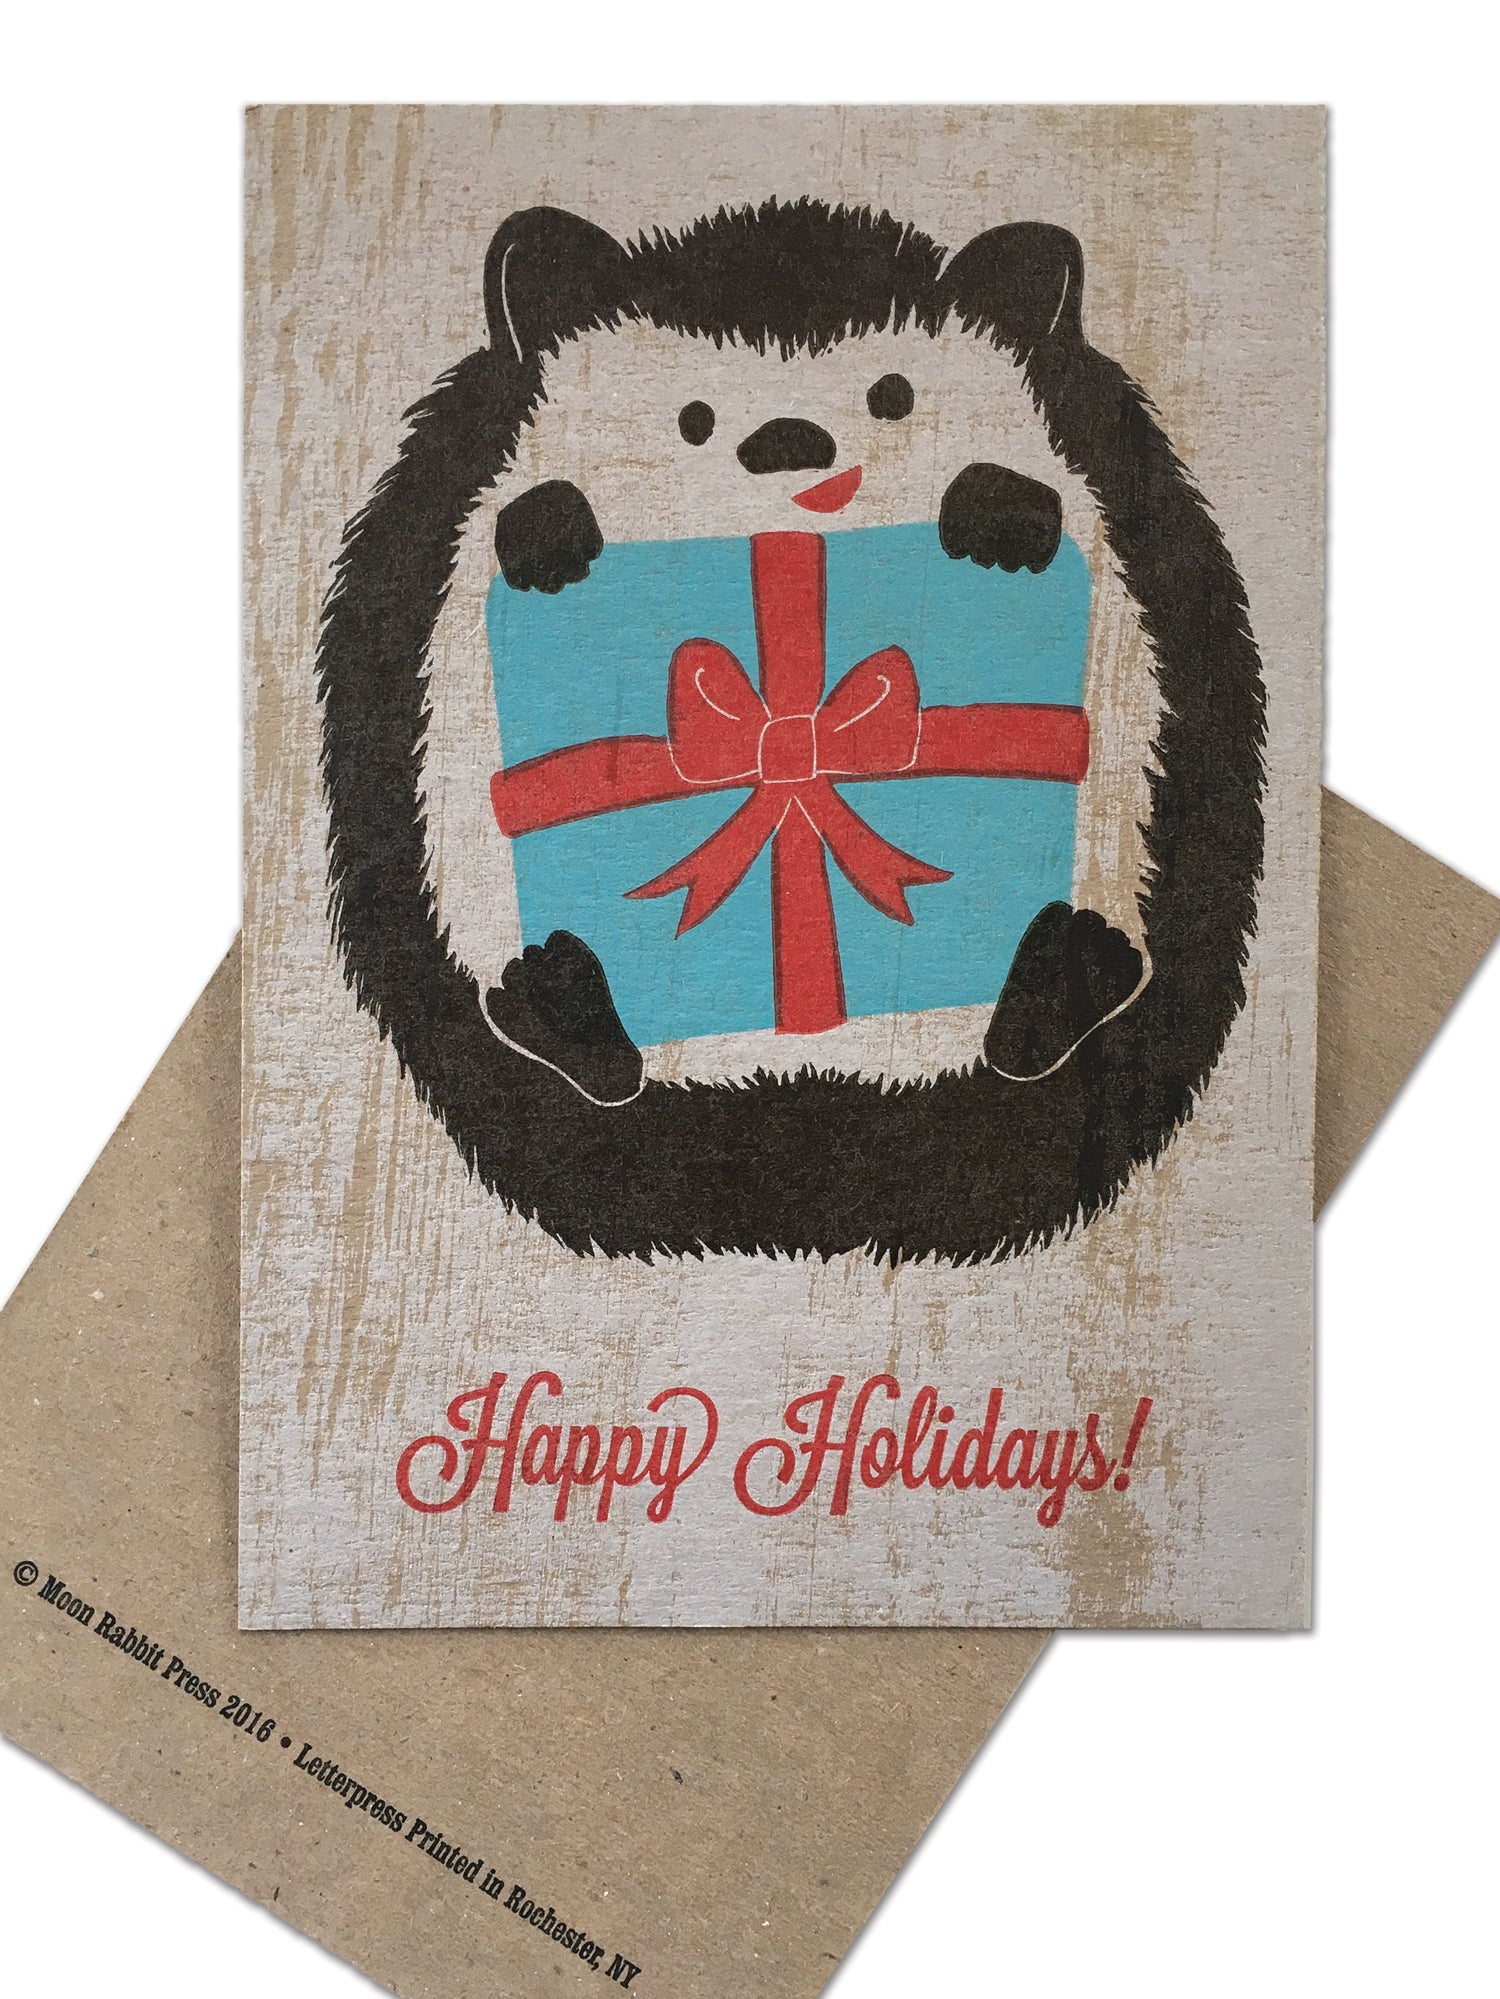 Assorted Holiday Card, 8-Pack, Letterpress Printed, single-sided, 5x7